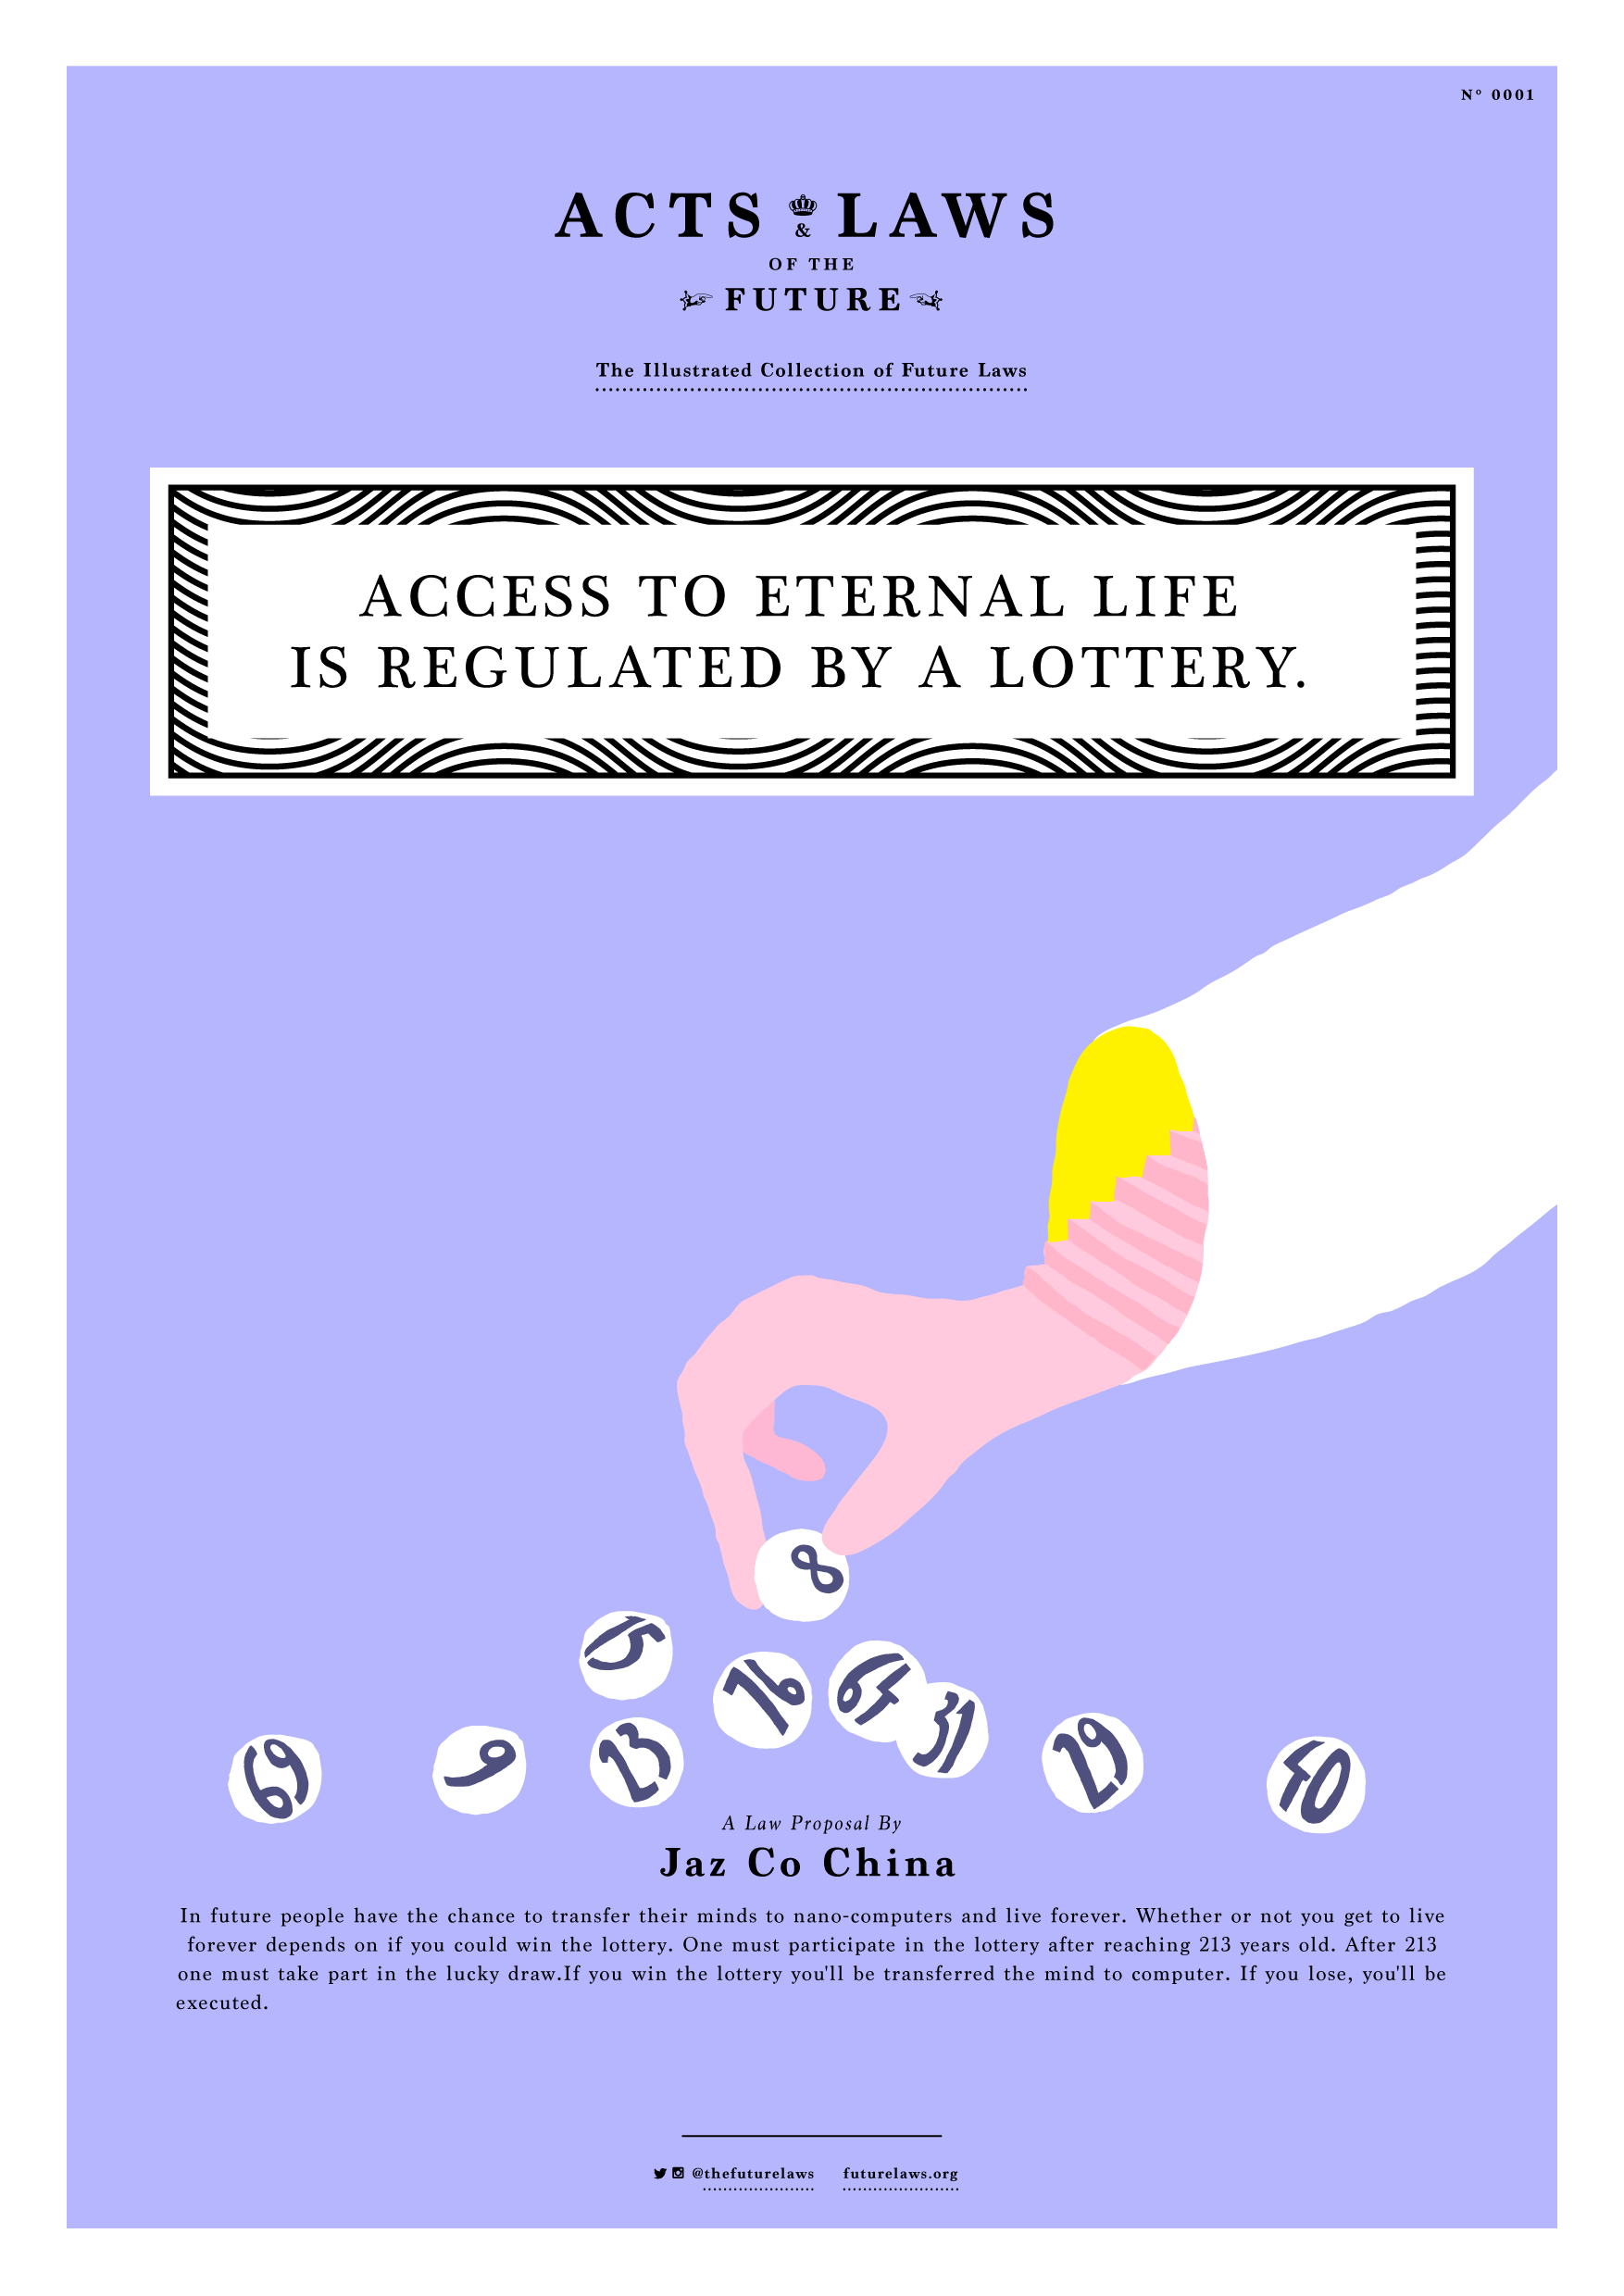 Access to eternal life is regulated by a lottery.